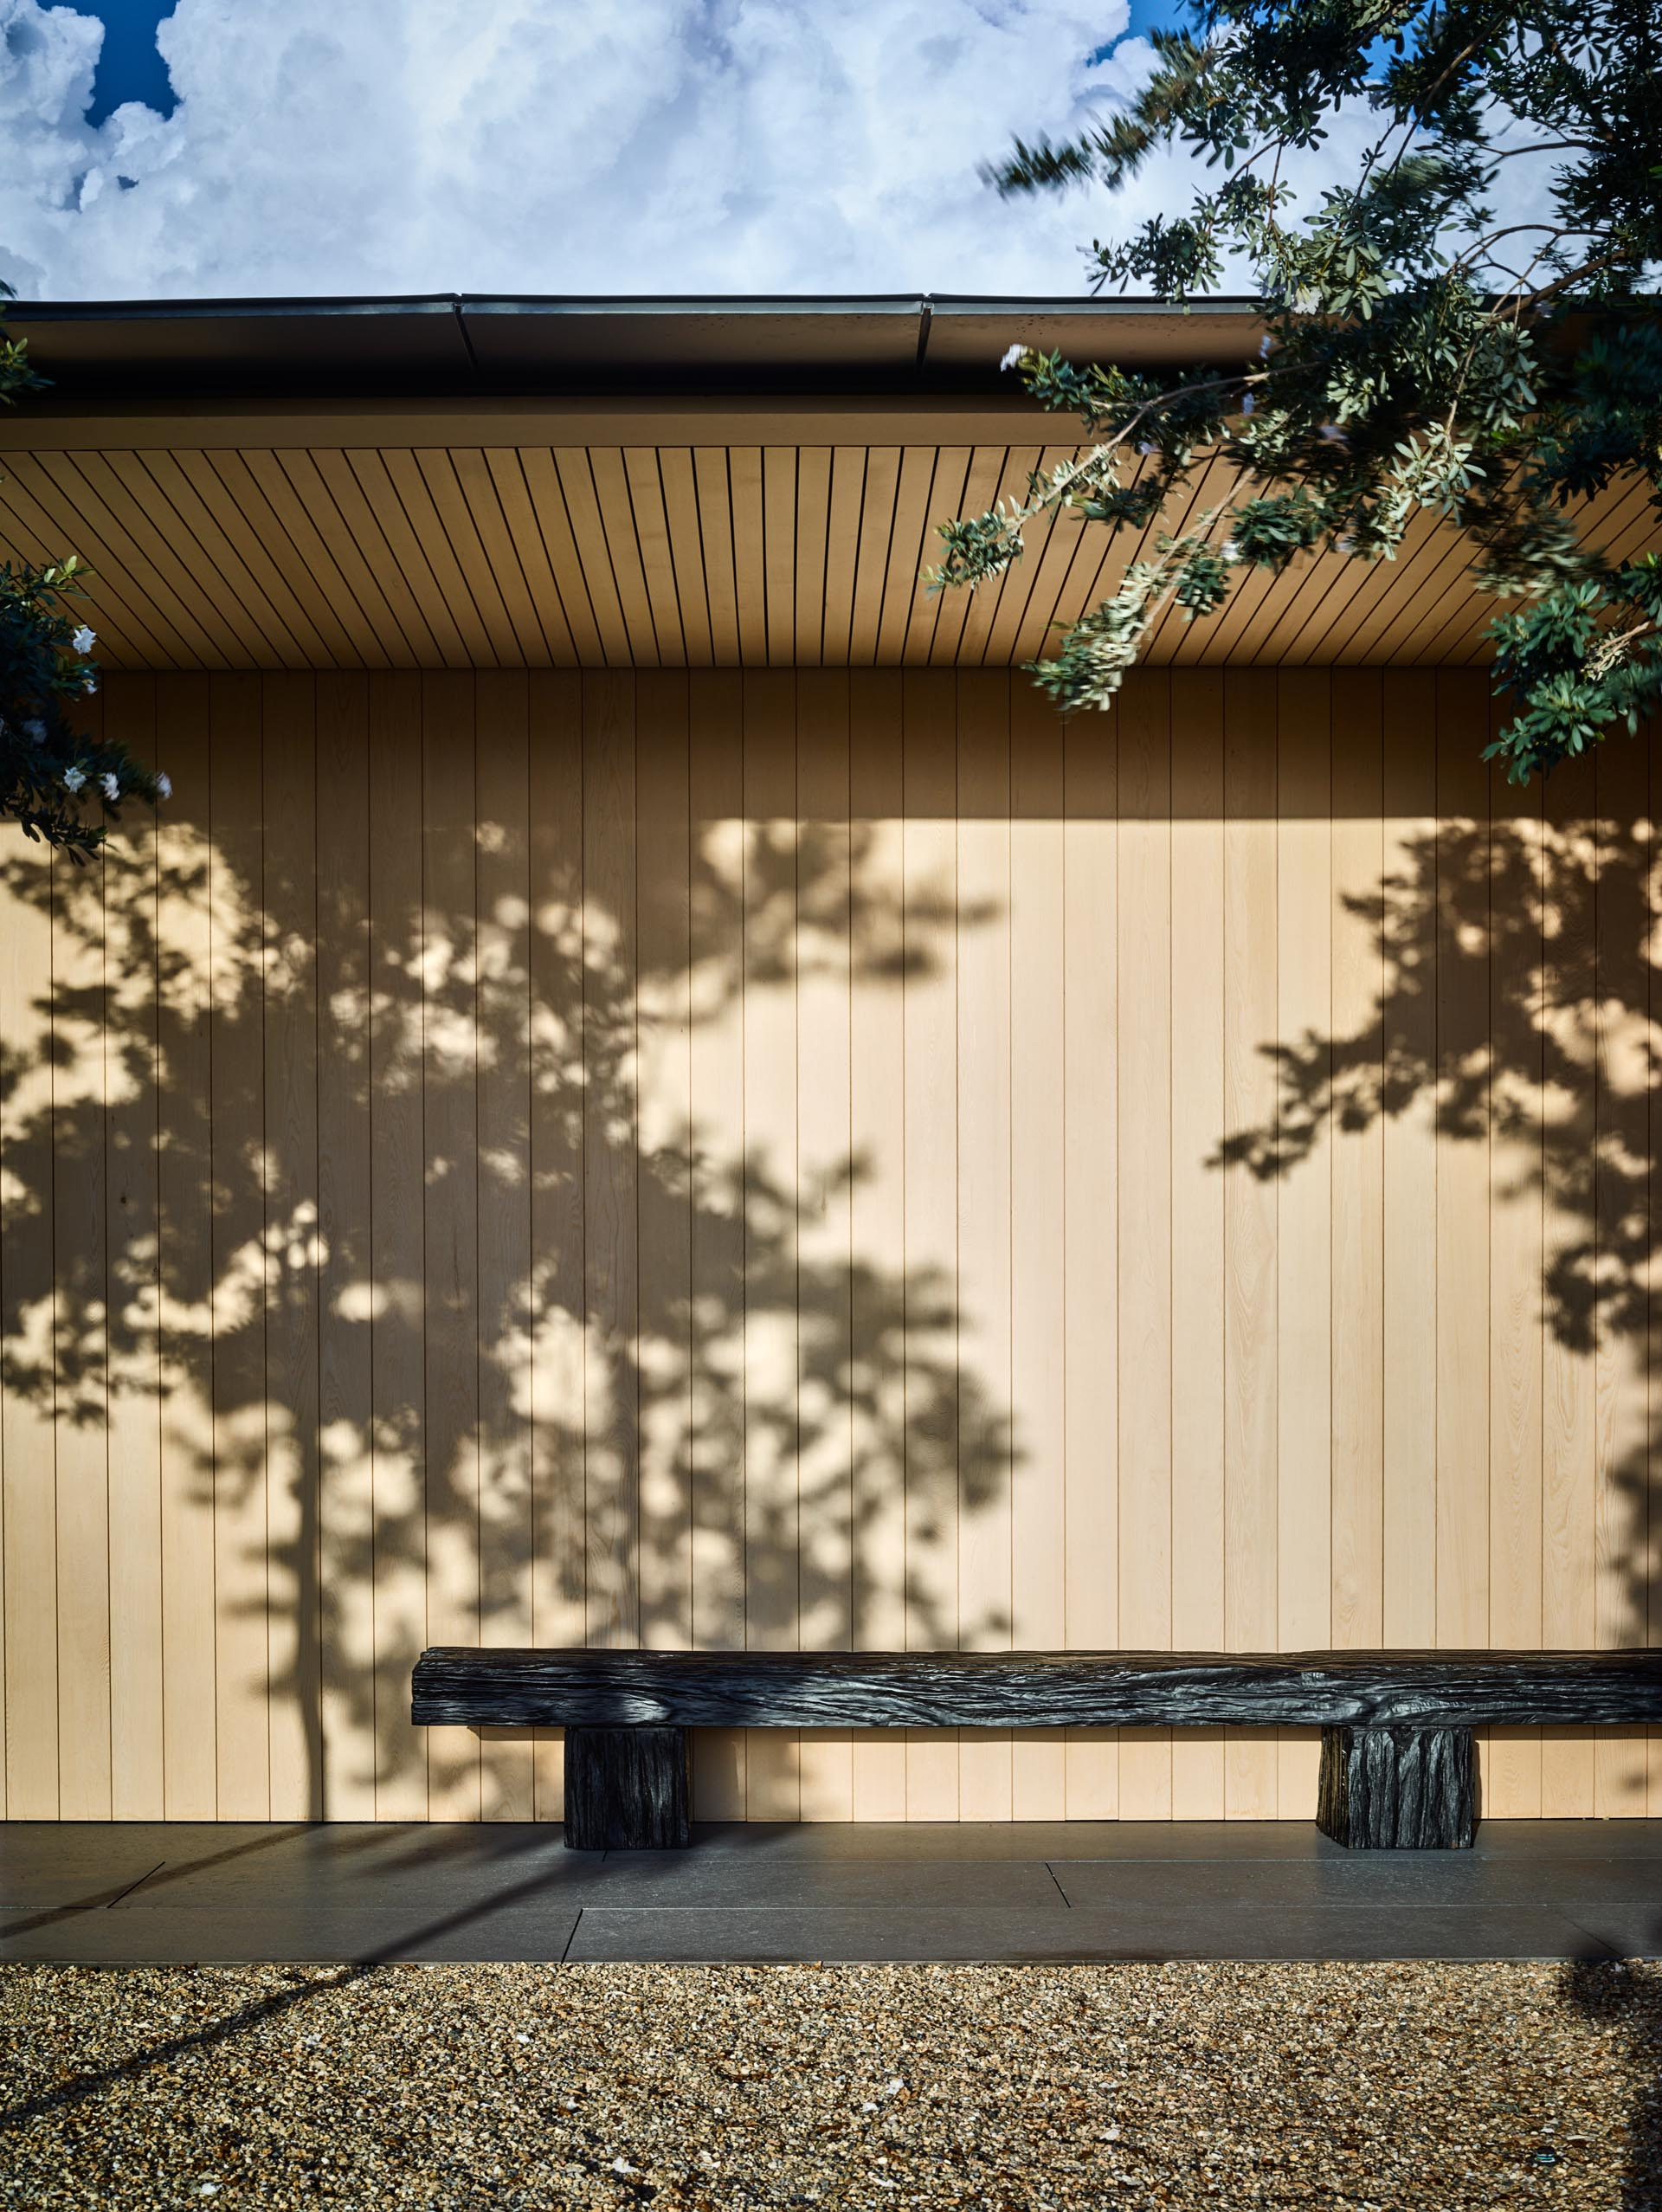 A modern home with light wood siding and a covered pathway.